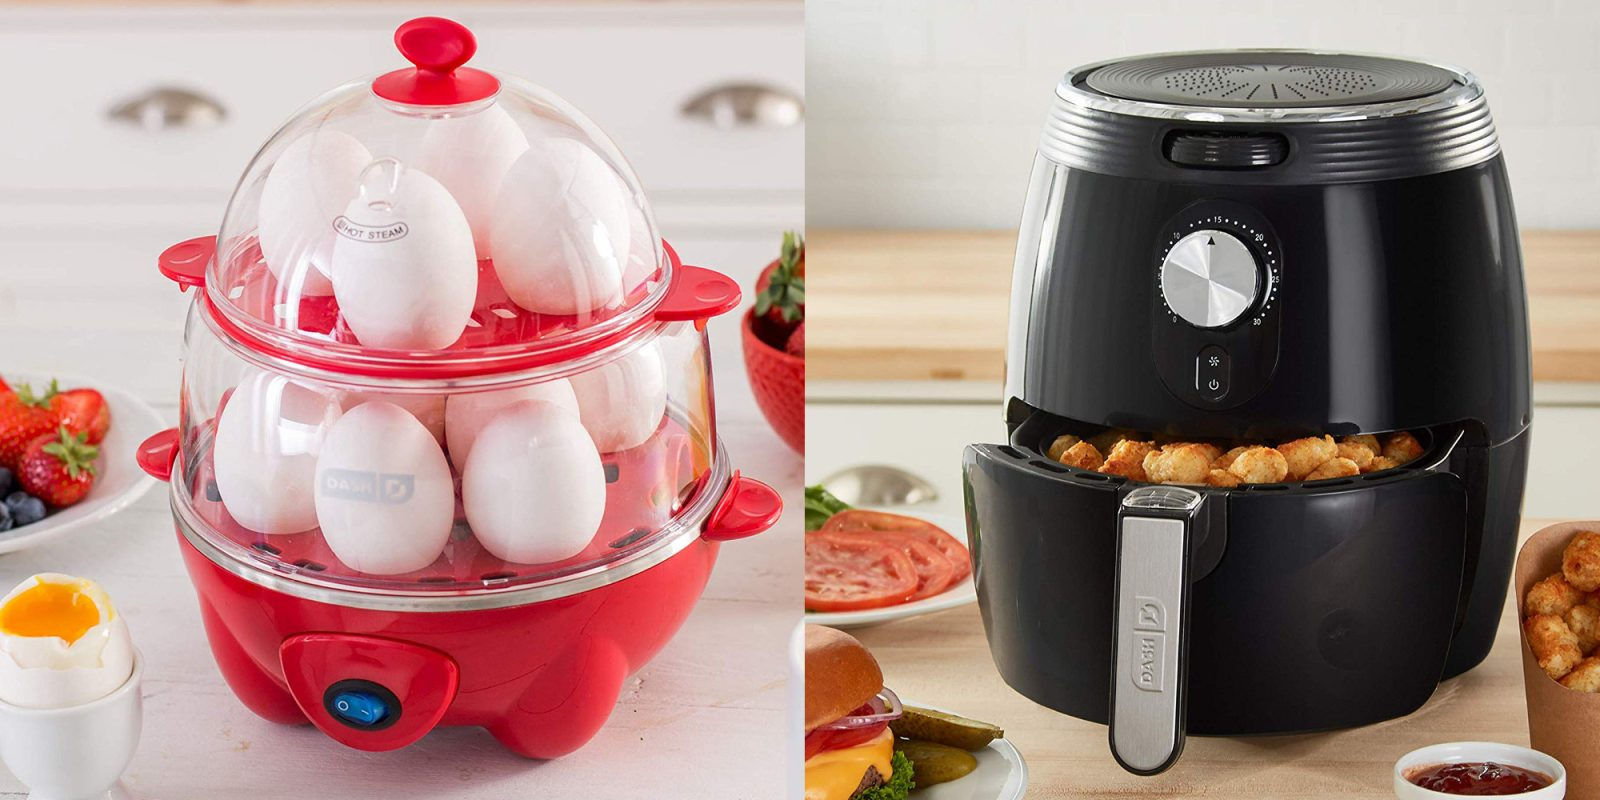 Best Black Friday home/kitchen deals from $5: Dash, Breville, Anova, many more